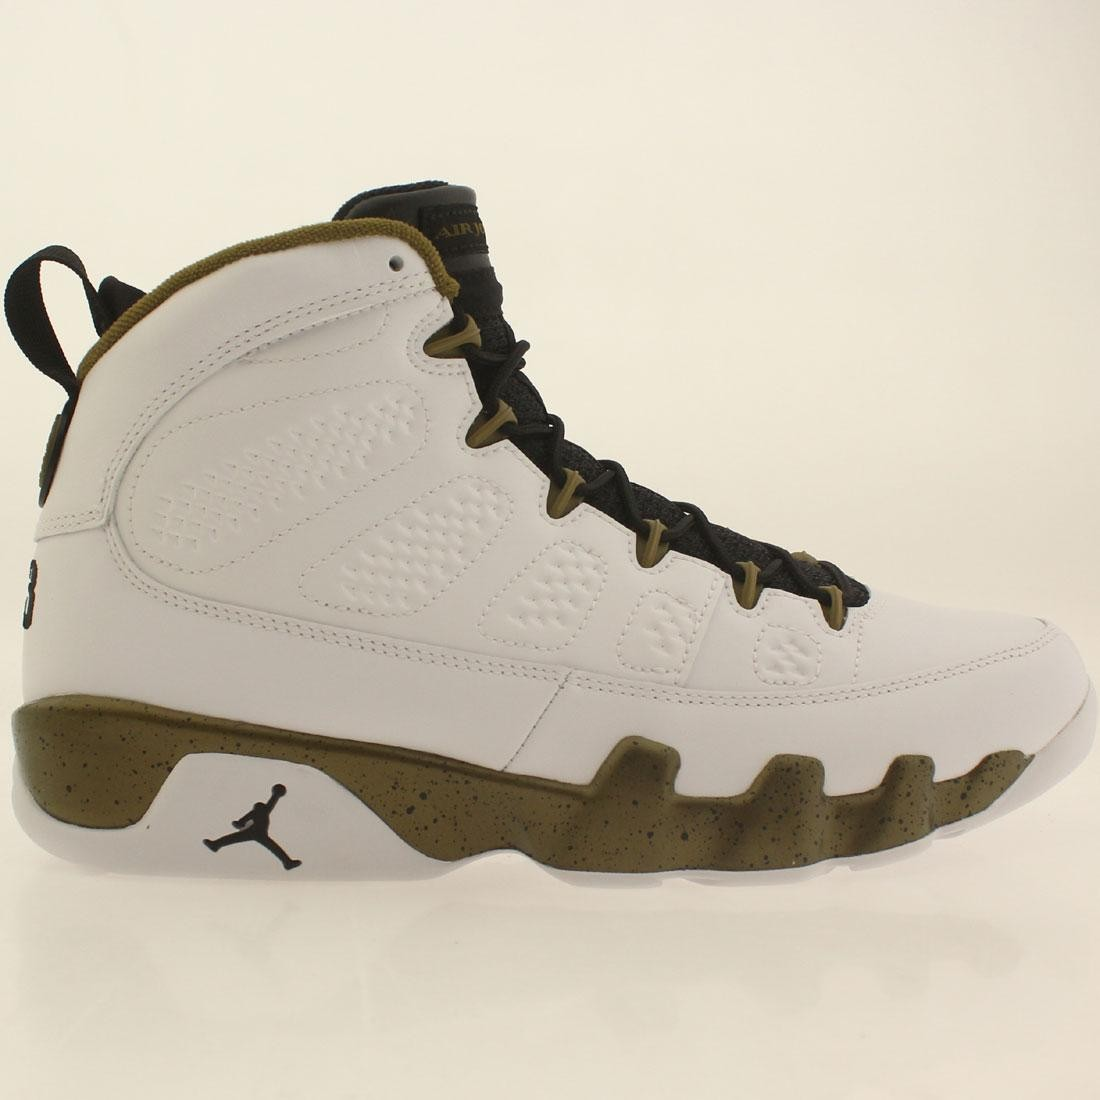 b58944d6355fab Jordan Men Air Jordan 9 Retro white black militia green